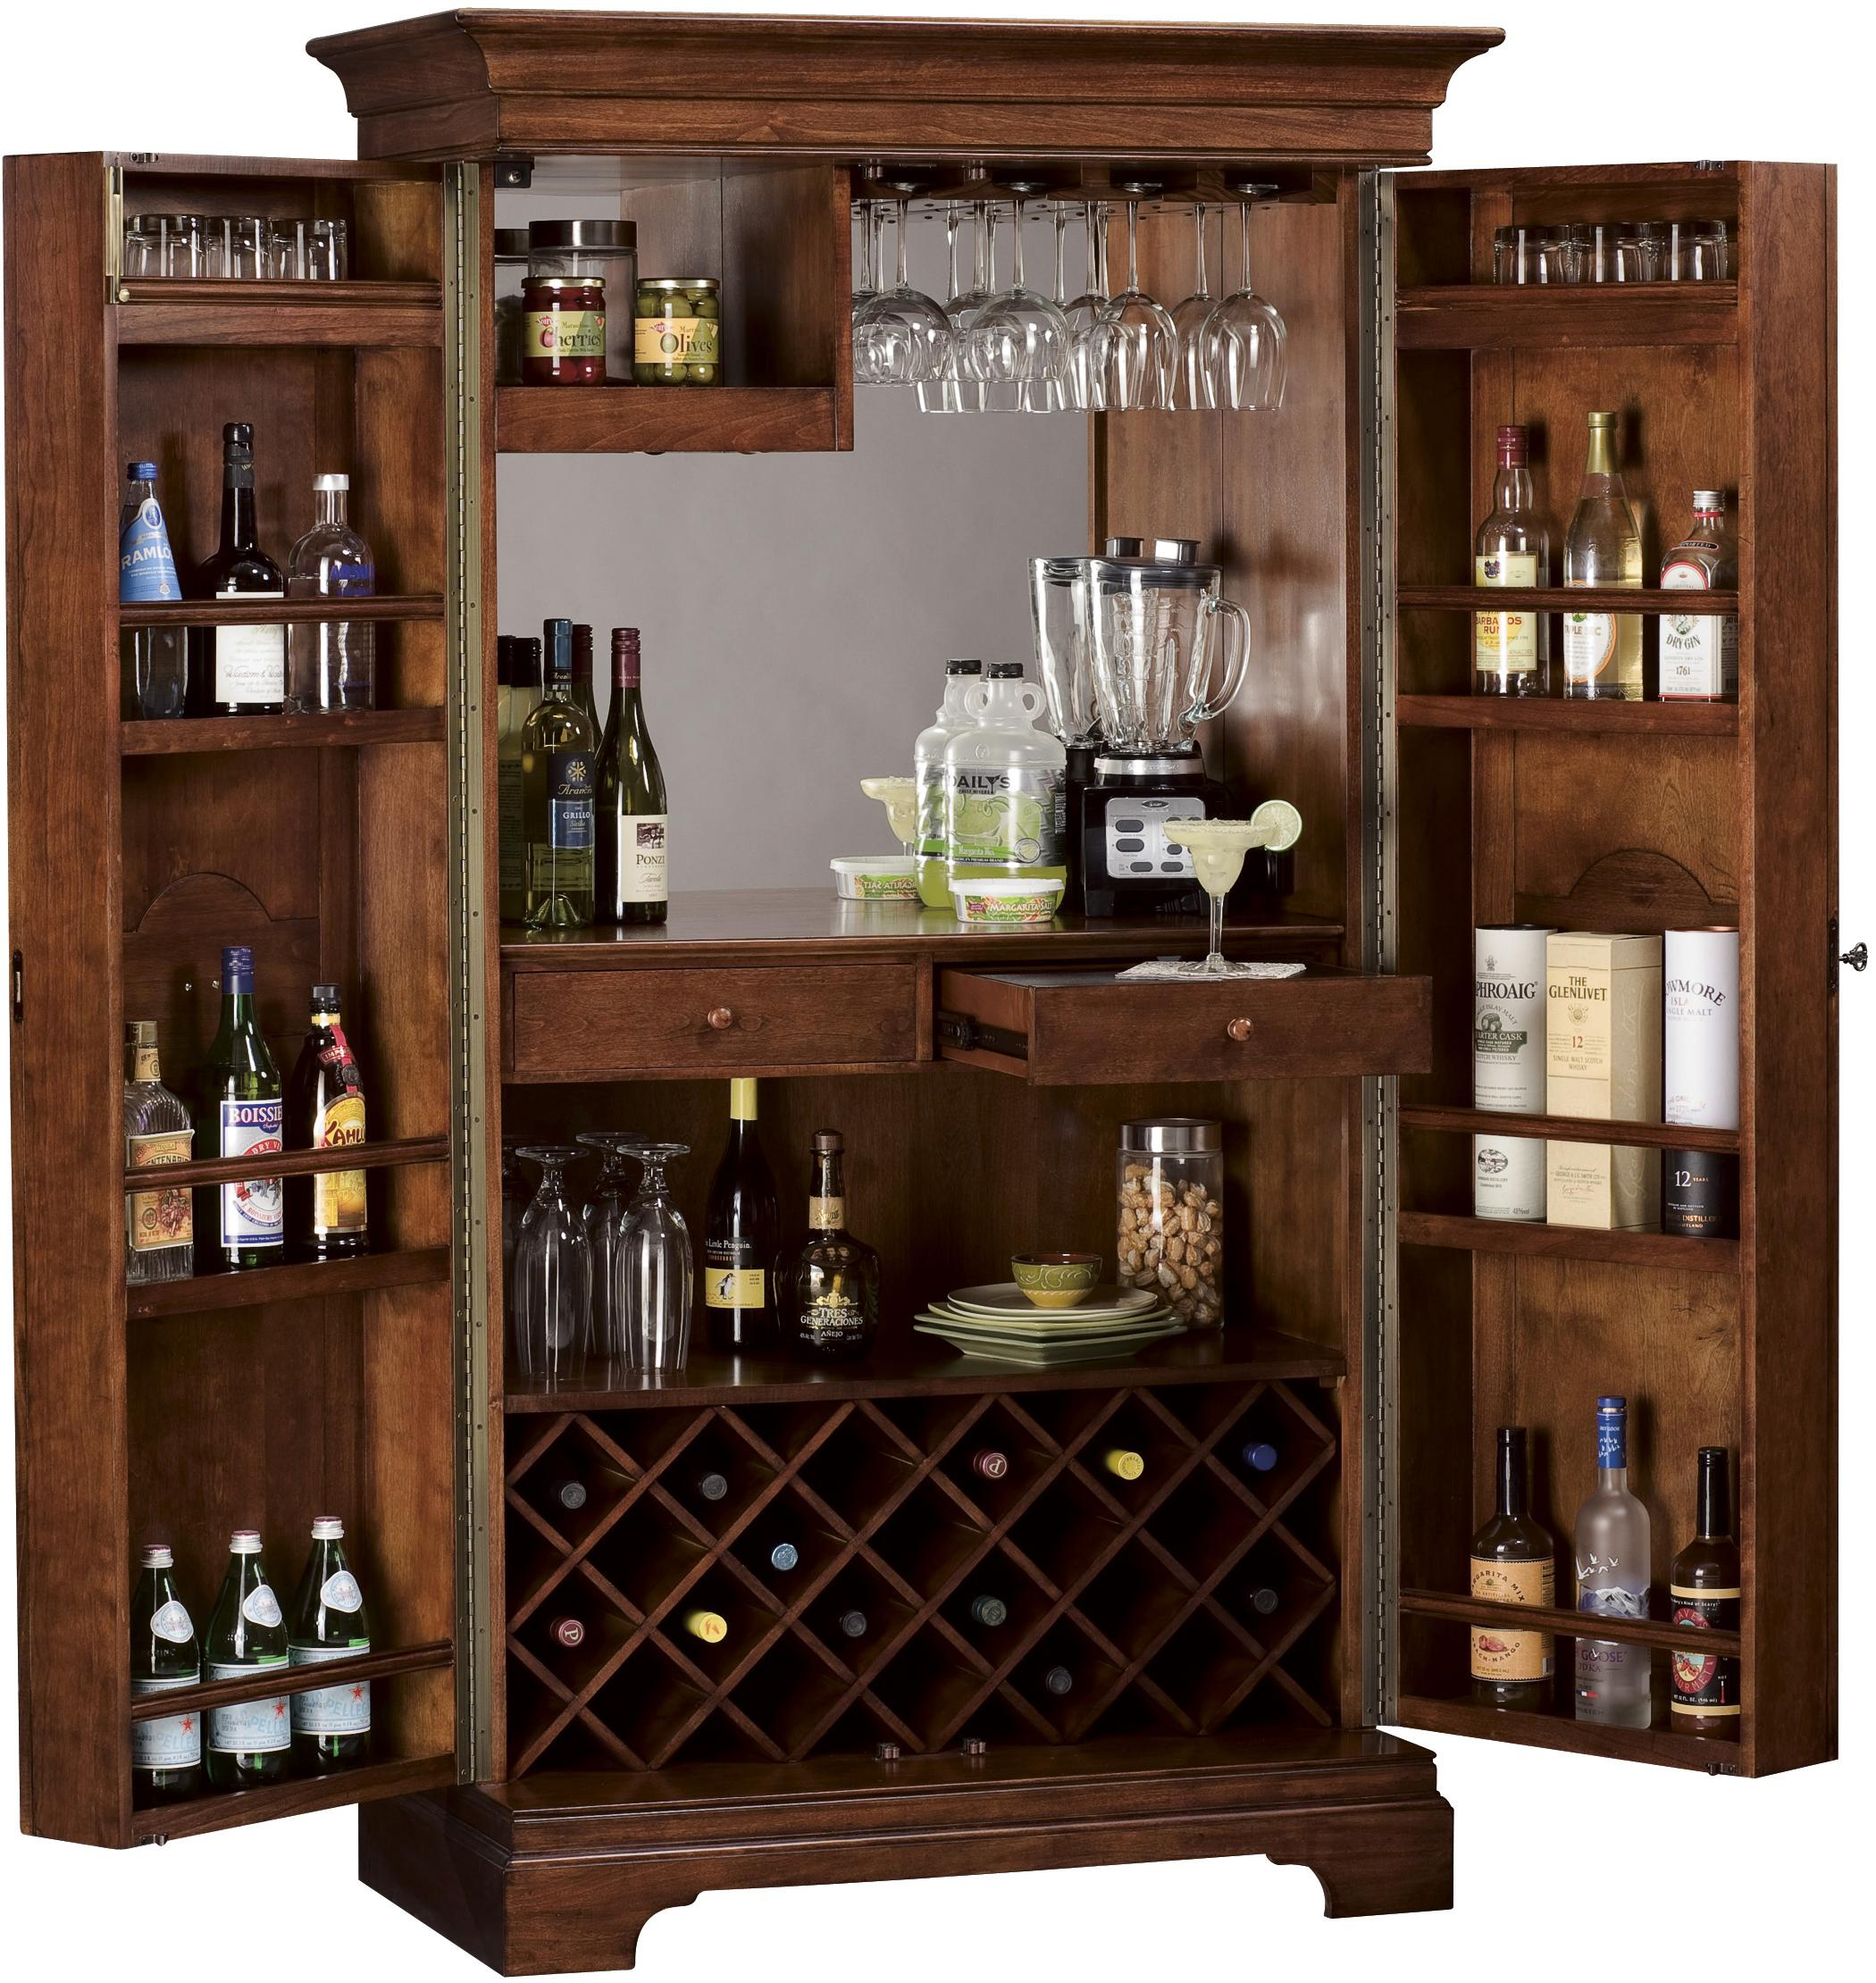 Barossa valley hide a bar cabinet stores up to bottles